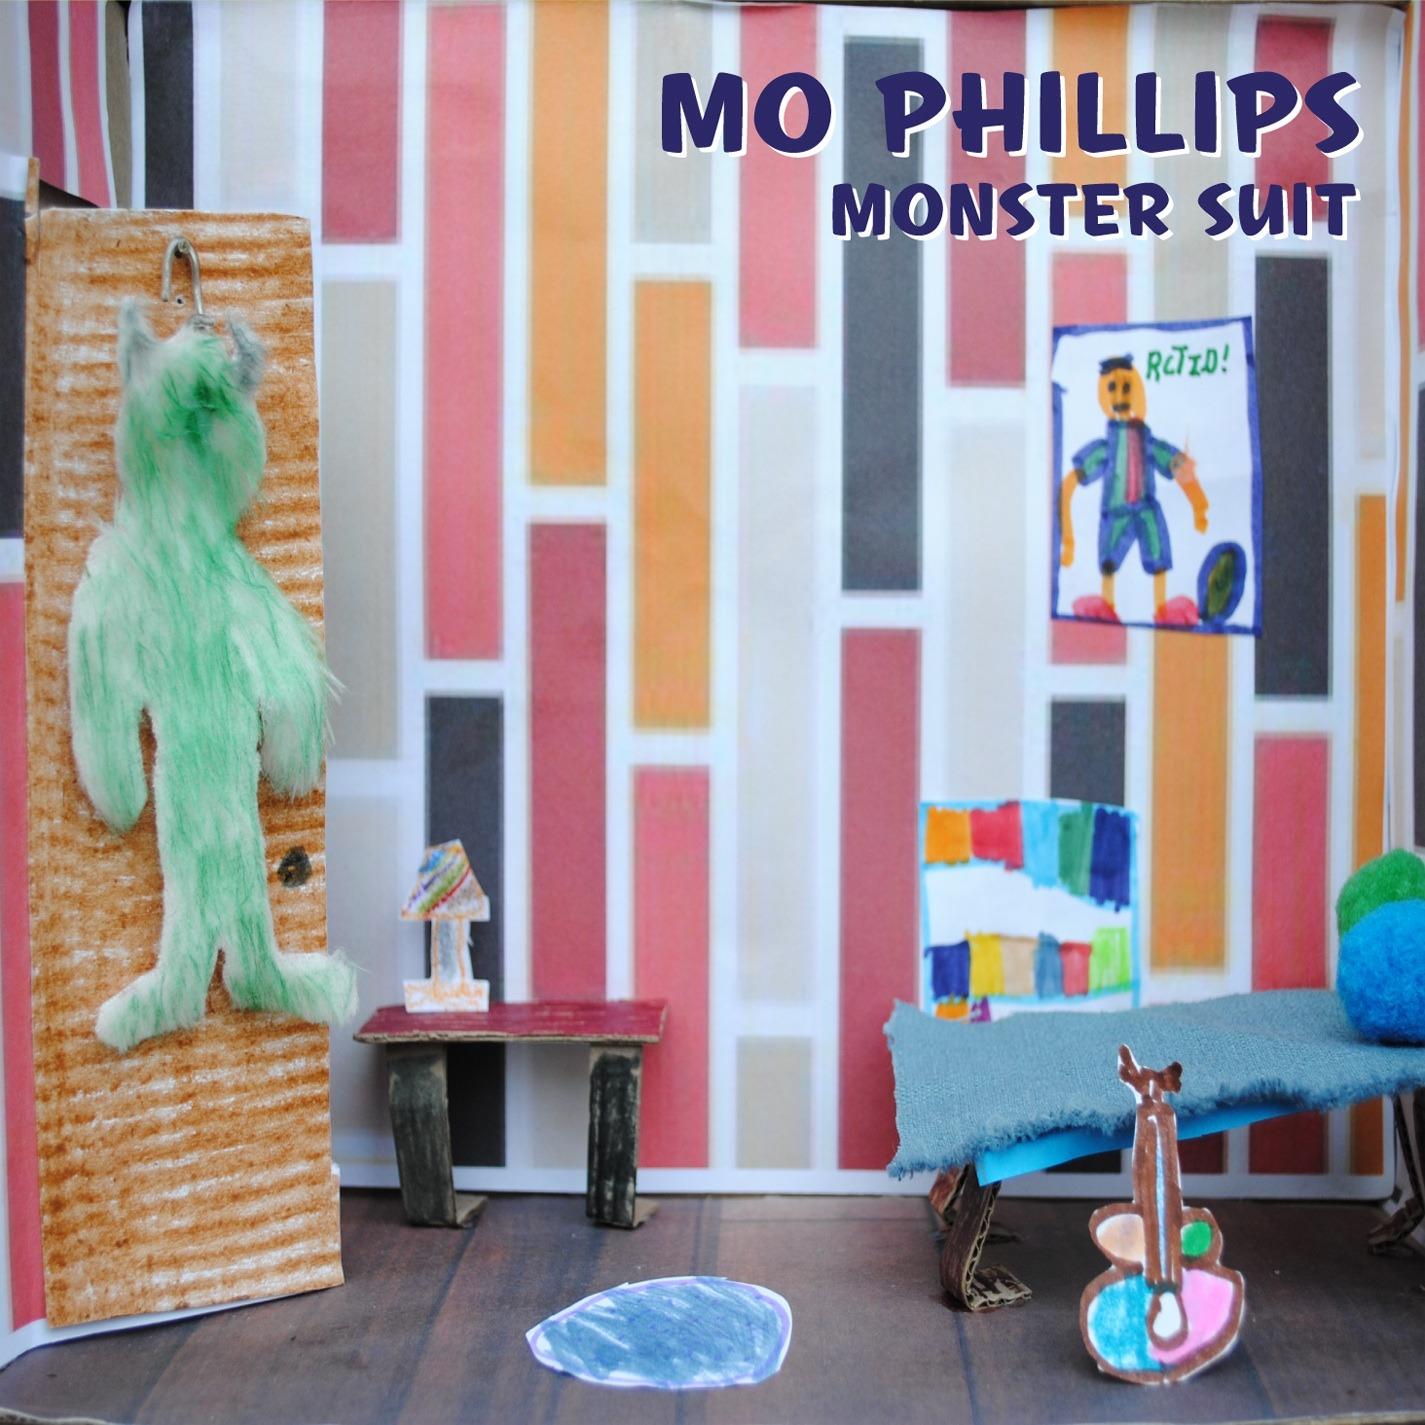 423323a419fc278b25fa_mo_phillips_monster_suit_cover_art_300_dpi.jpg